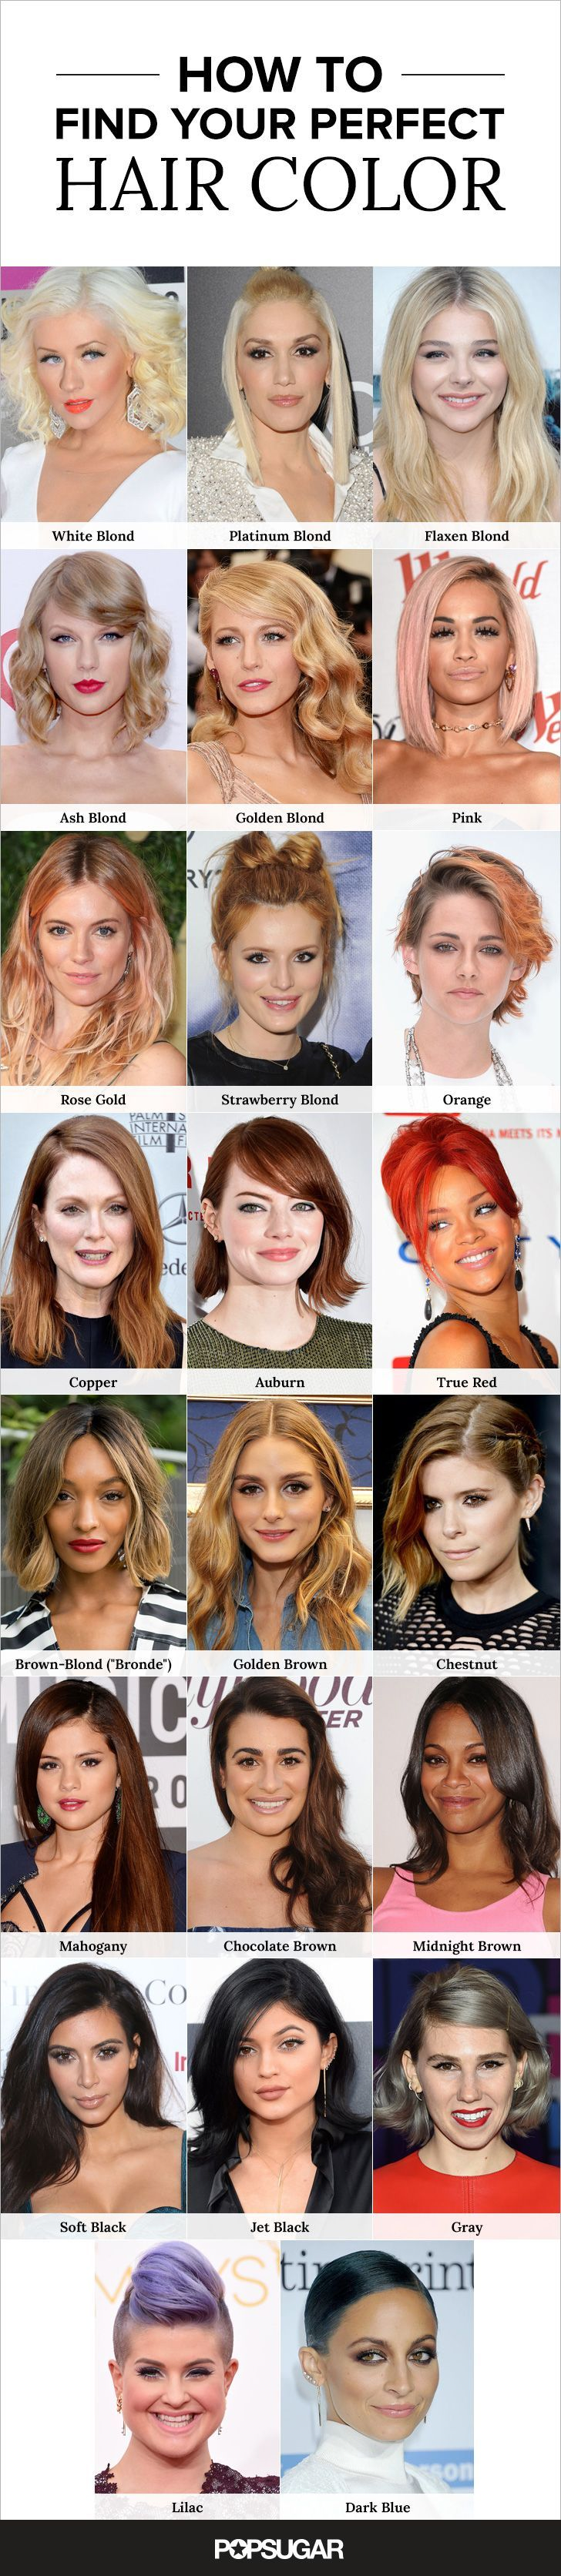 Celebrities with Brown Hair | YouBeauty